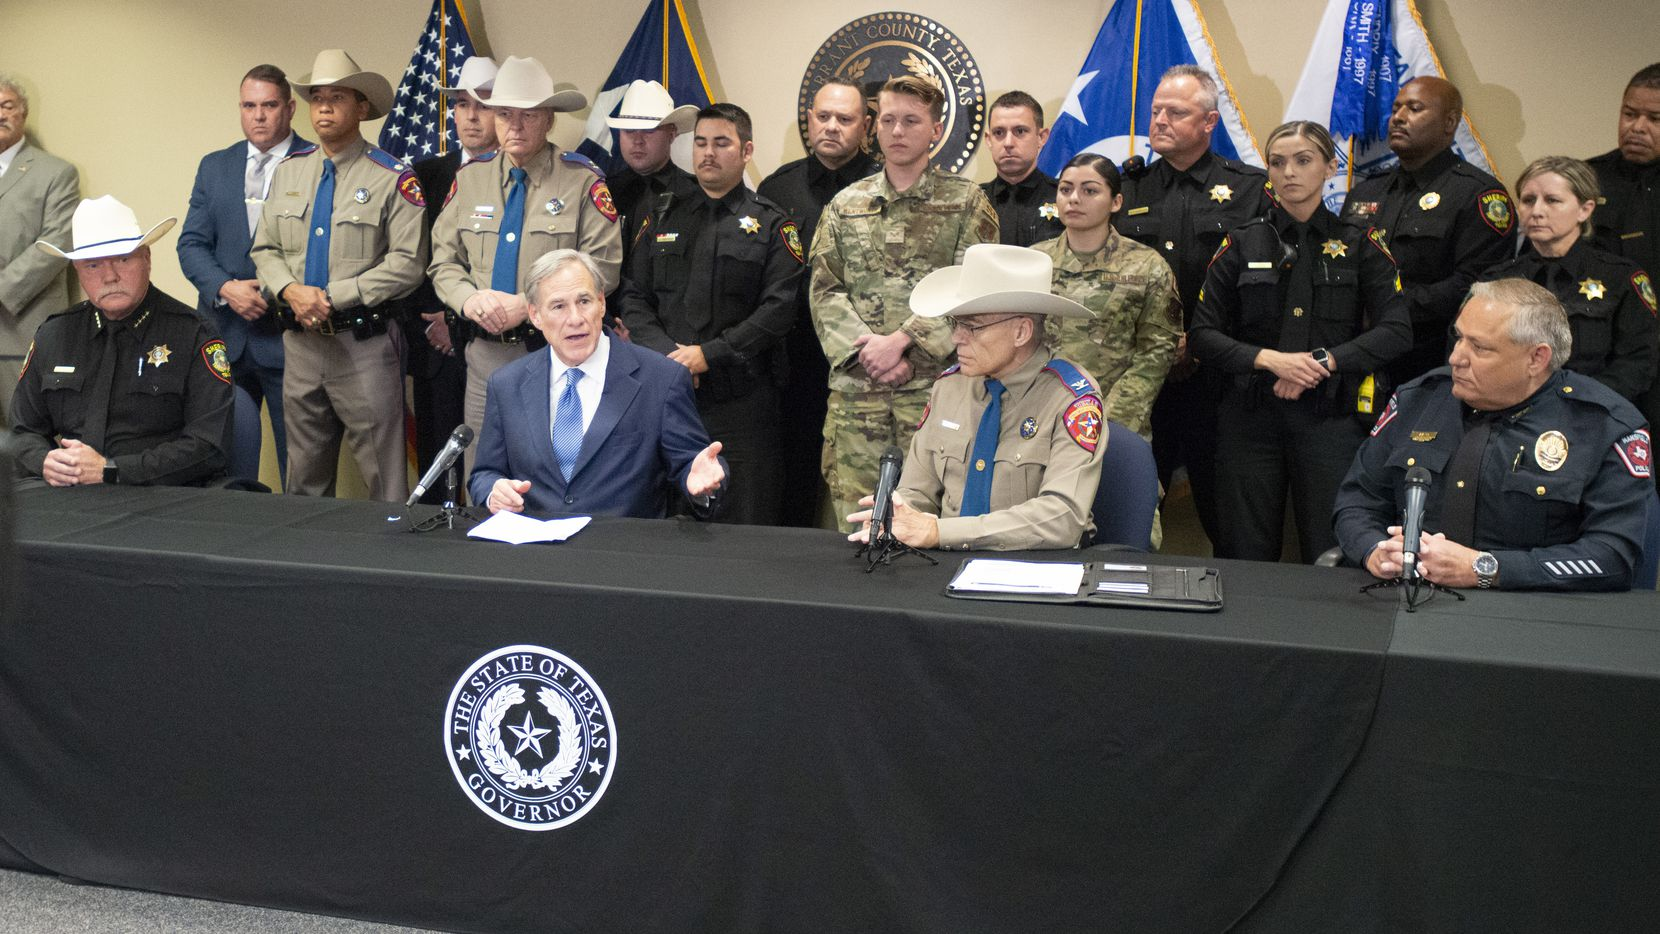 Backed by Department of Public Safety officers, Tarrant County Sheriff's Deputies and Texas national guard members Texas Governor Greg Abbott addresses the media during a May 27, 2021 press conference at the Tarrant County Sheriff's office in Fort Worth, Texas to provide an update on the state's effort to secure the border and prevent the smuggling of dangerous drugs into Texas. (Robert W. Hart/Special Contributor)